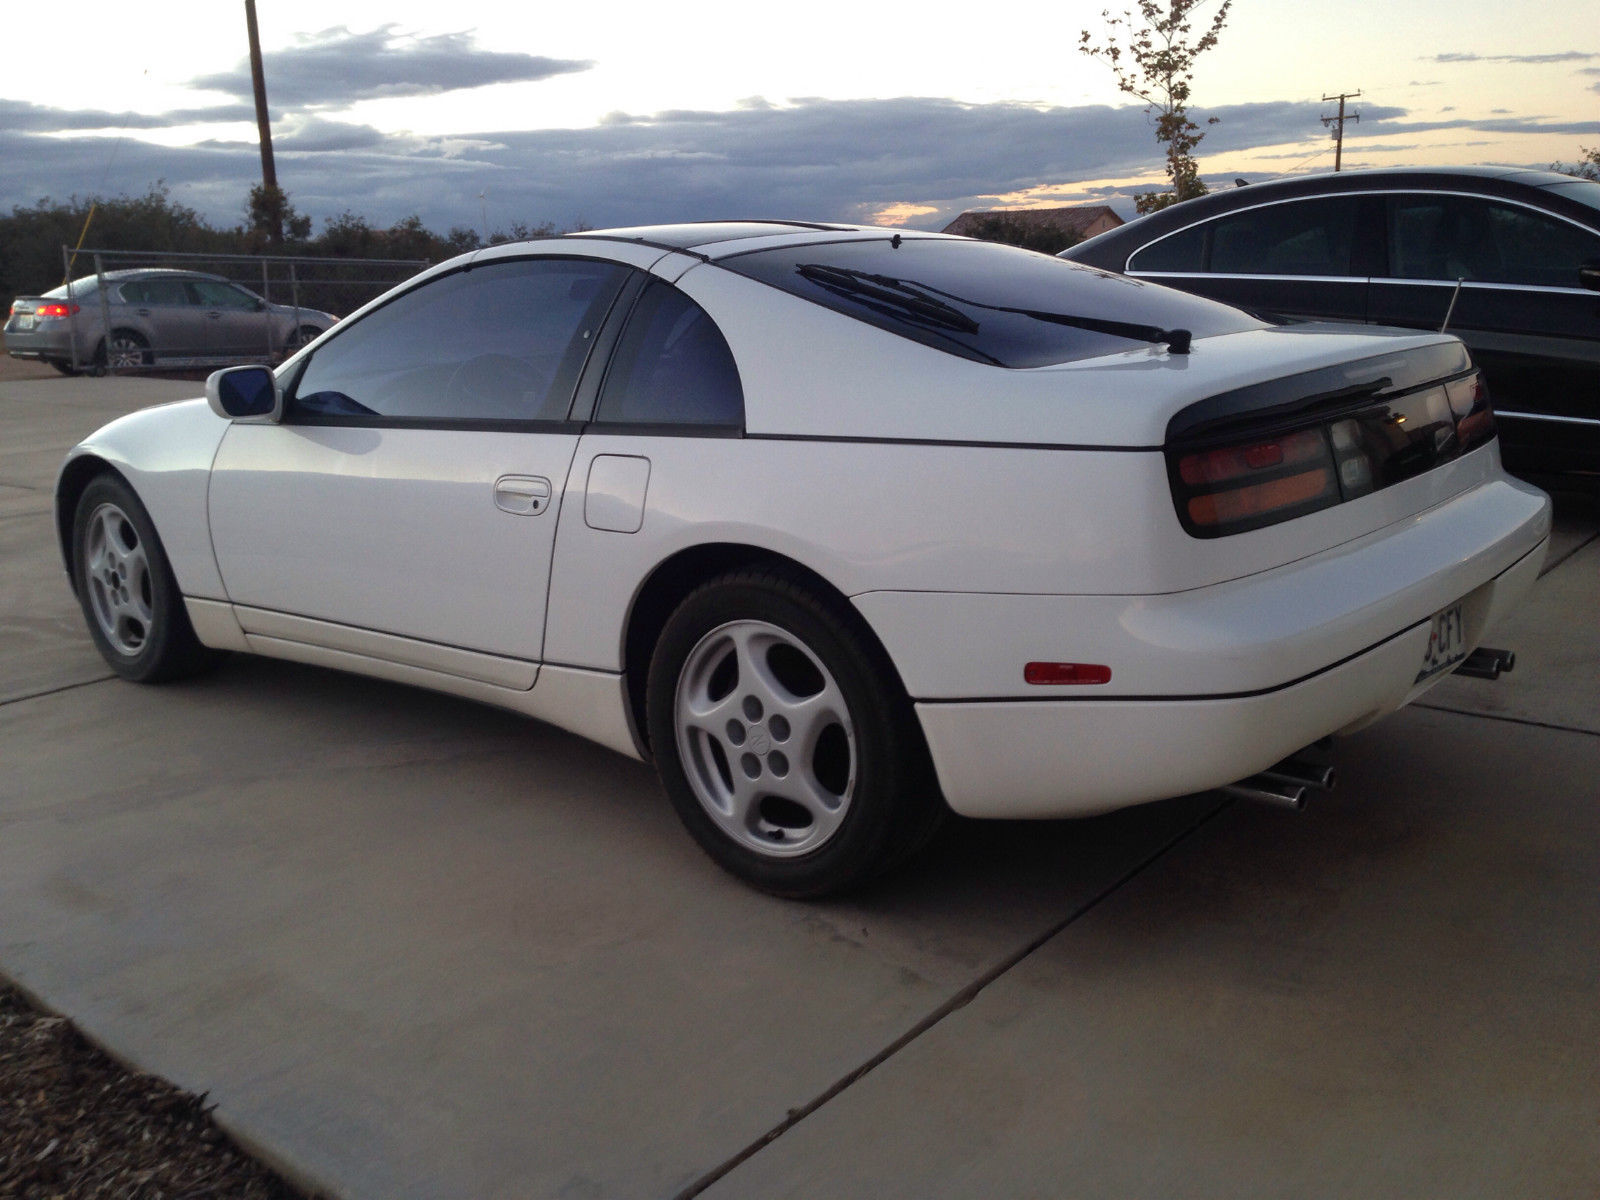 1990 Nissan 300zx One Owner Clean Title For Sale In